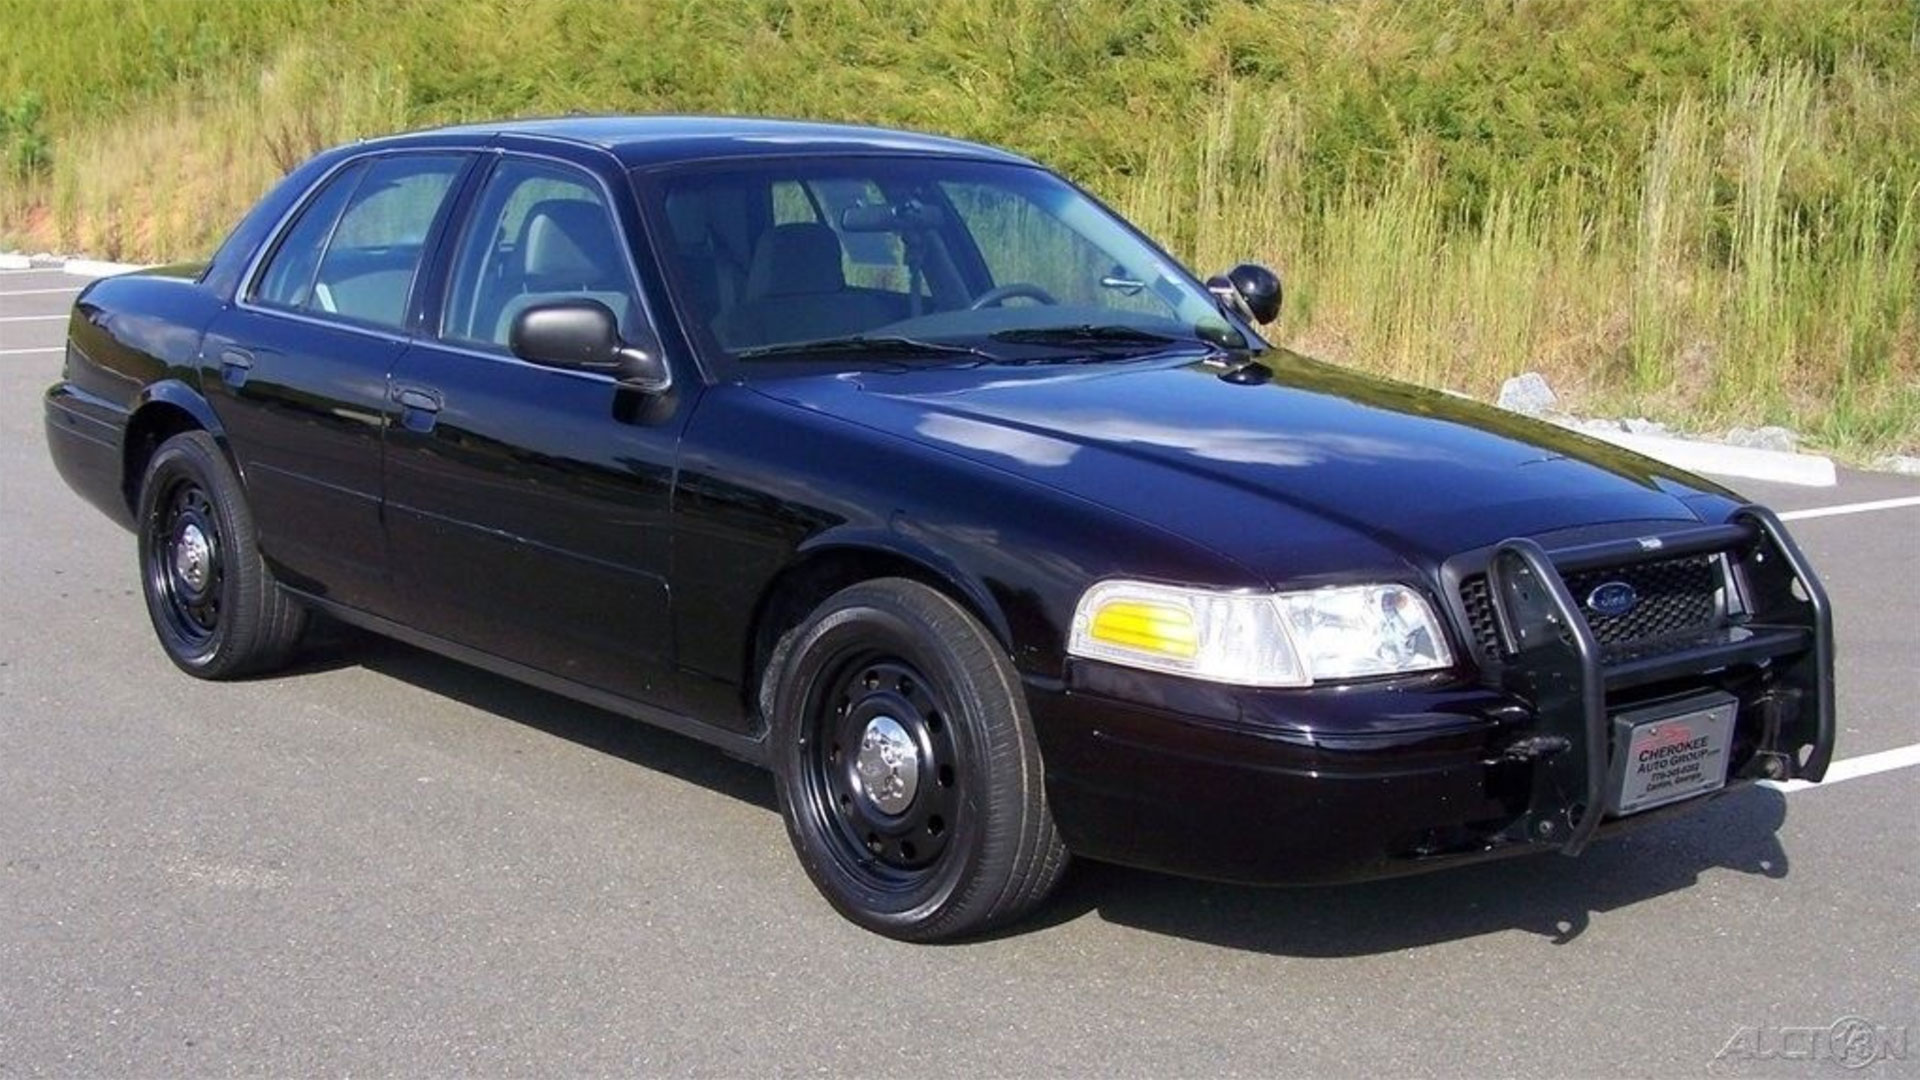 Used Police Cars Awesome A Used Police Car May Be the Best First Car the Drive